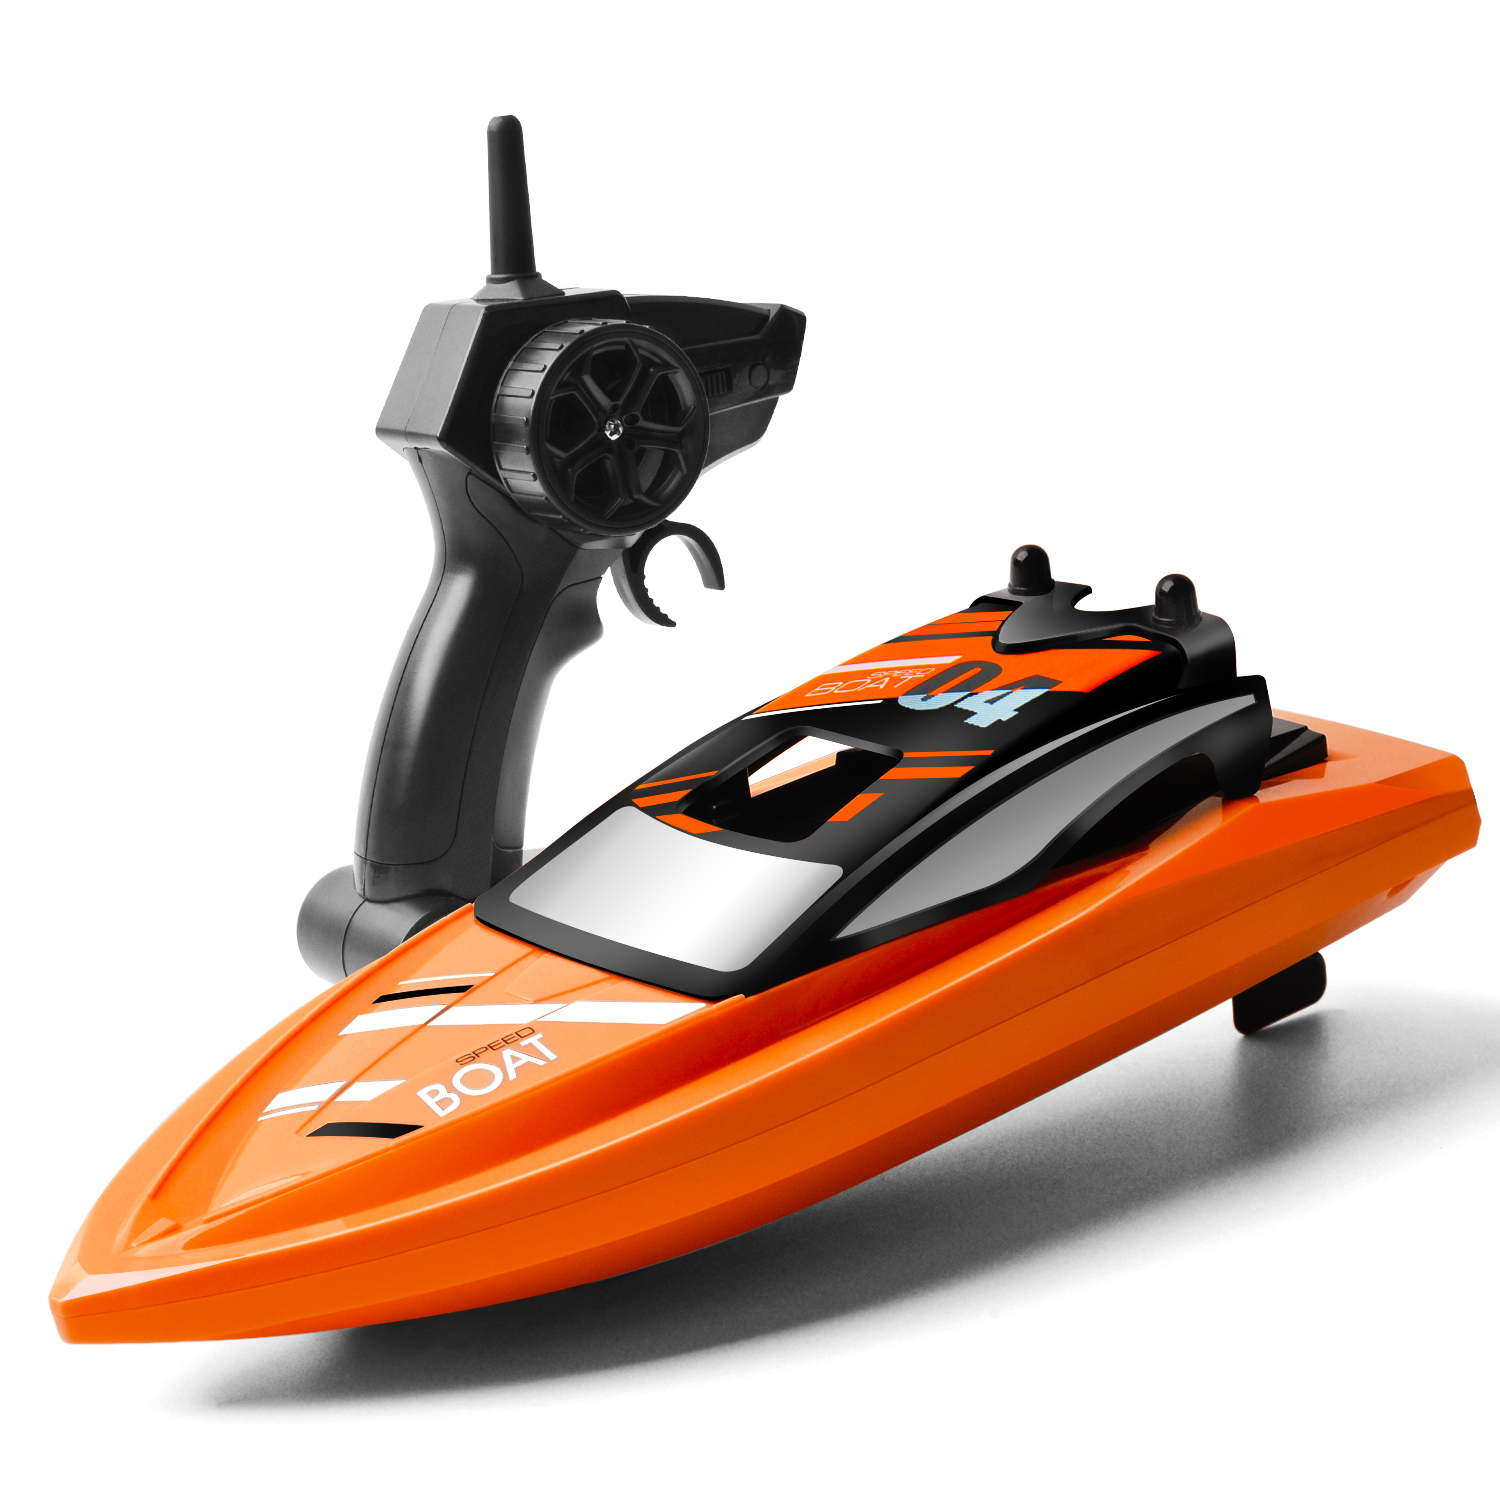 Remote Controlled Rc Boats 2 4ghz With 2 Motors High Speed Toys For Pool Rive R Rc Model Vehicles Kits Boats Watercraft